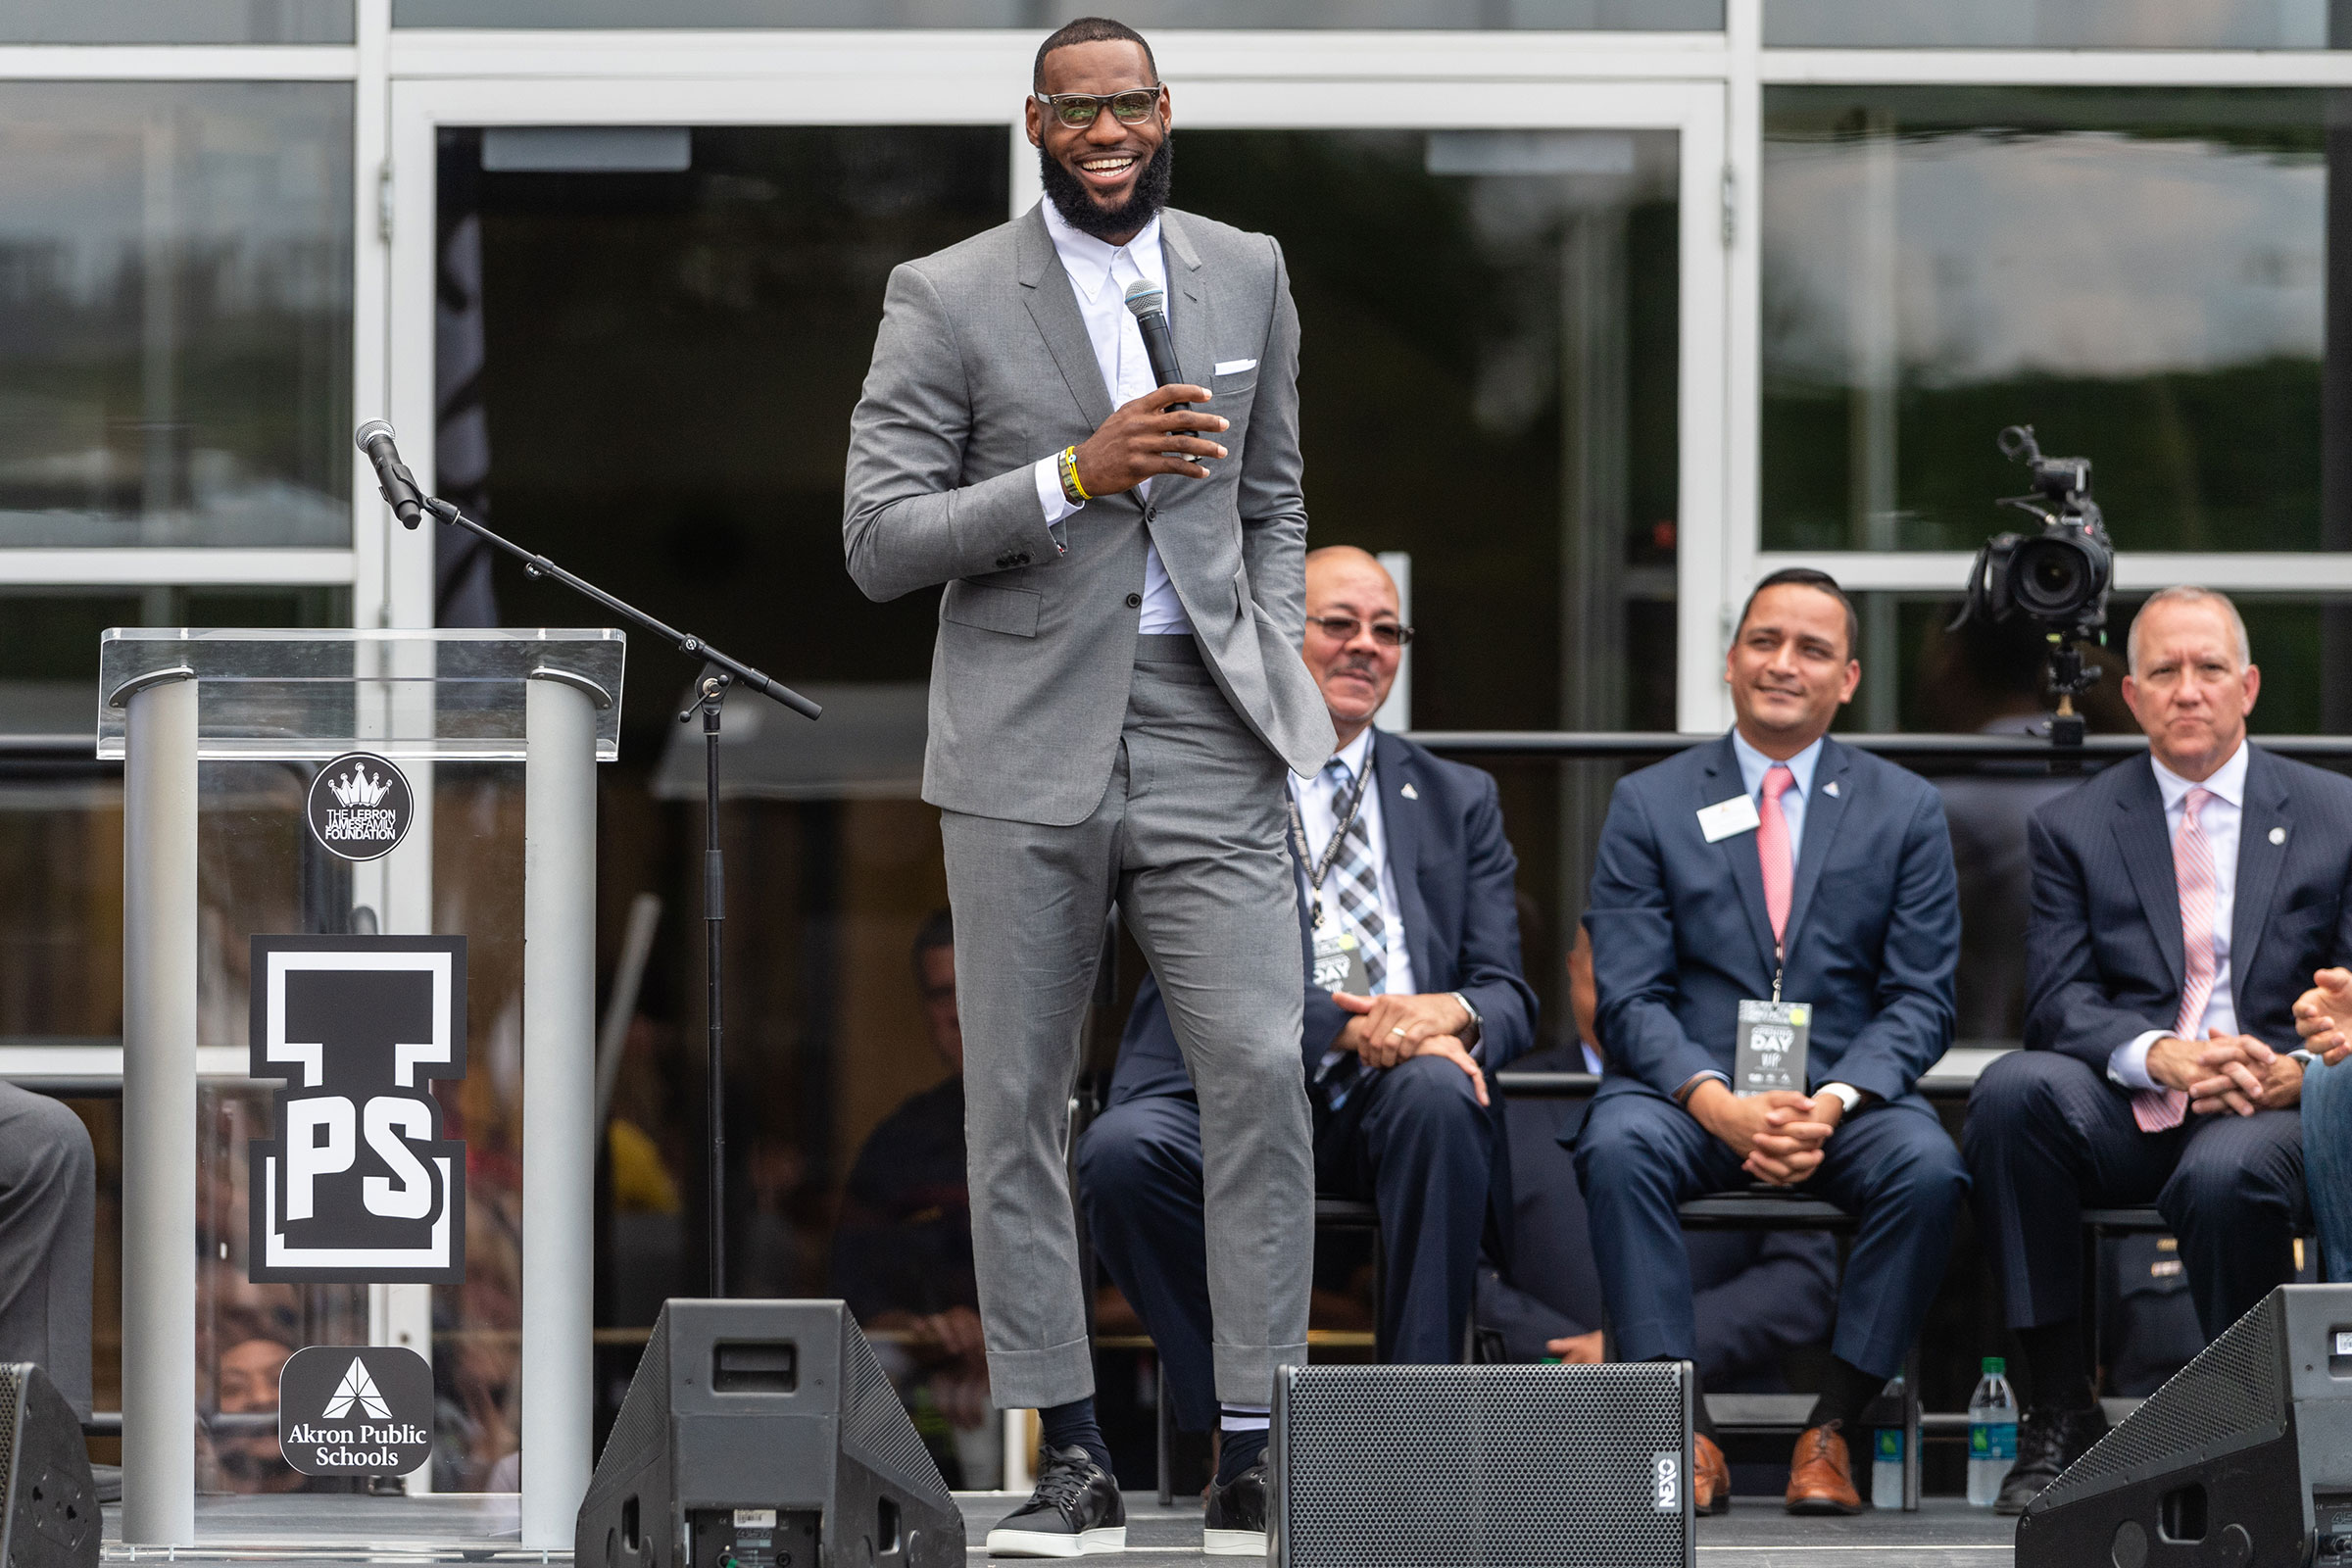 LeBron James addresses the crowd during the opening ceremonies of the I Promise School in Akron, Ohio on July 30, 2018.